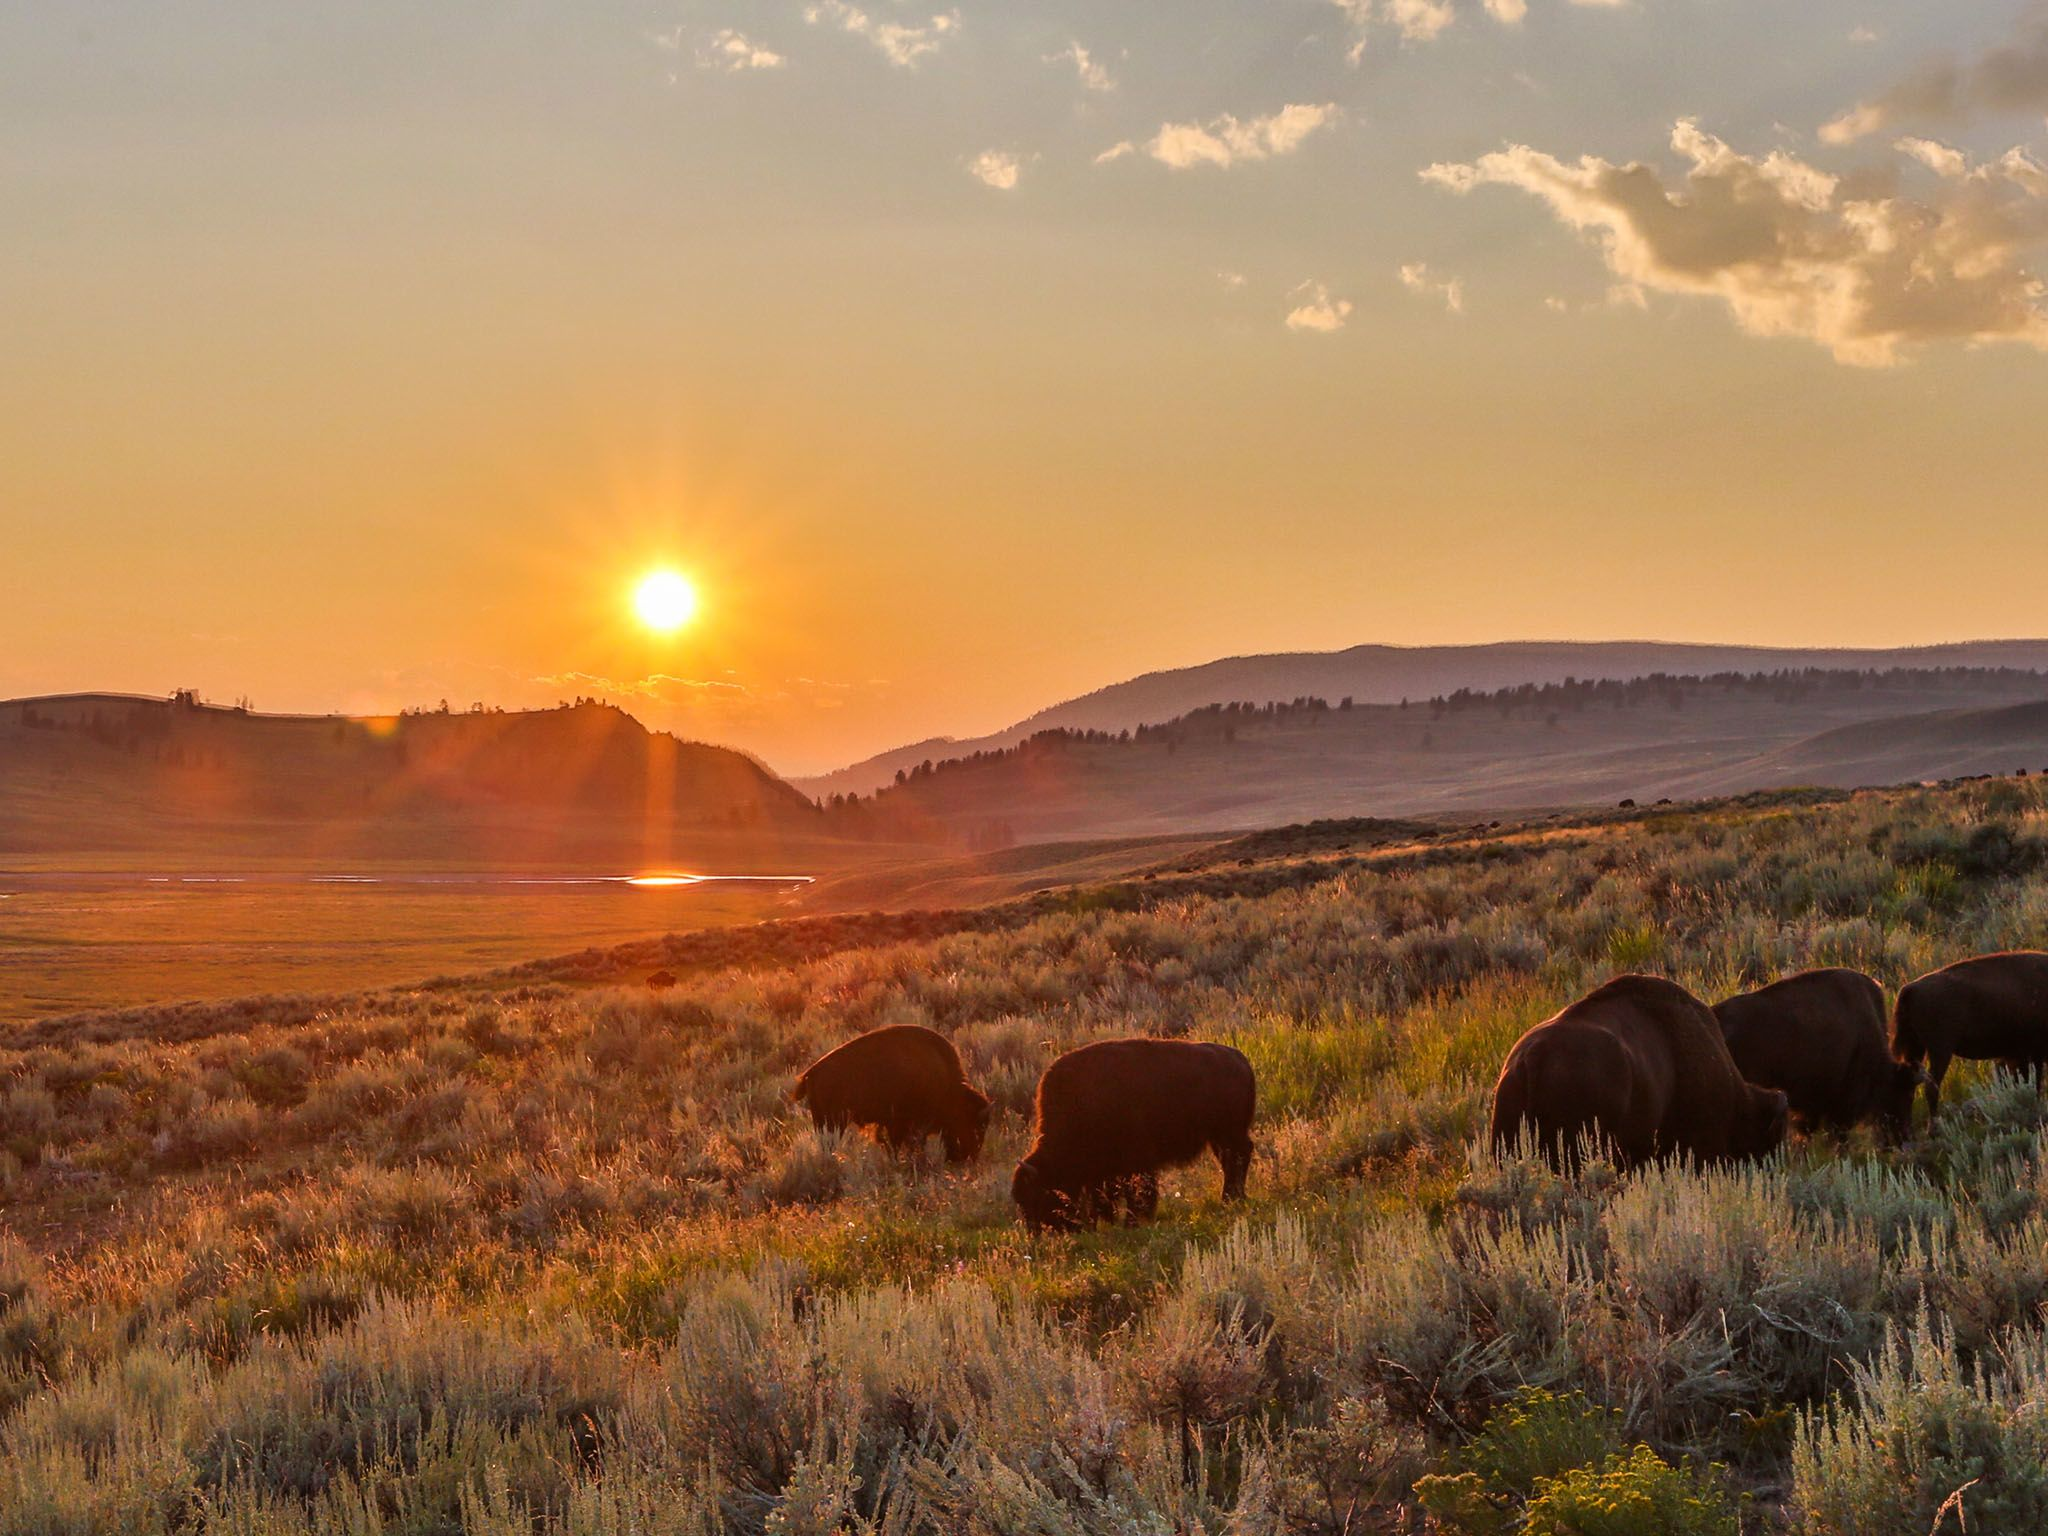 Yellowstone, WYO.: Bison herd in summer evening light during the bison rut. This image is from... [Photo of the day - November 2015]